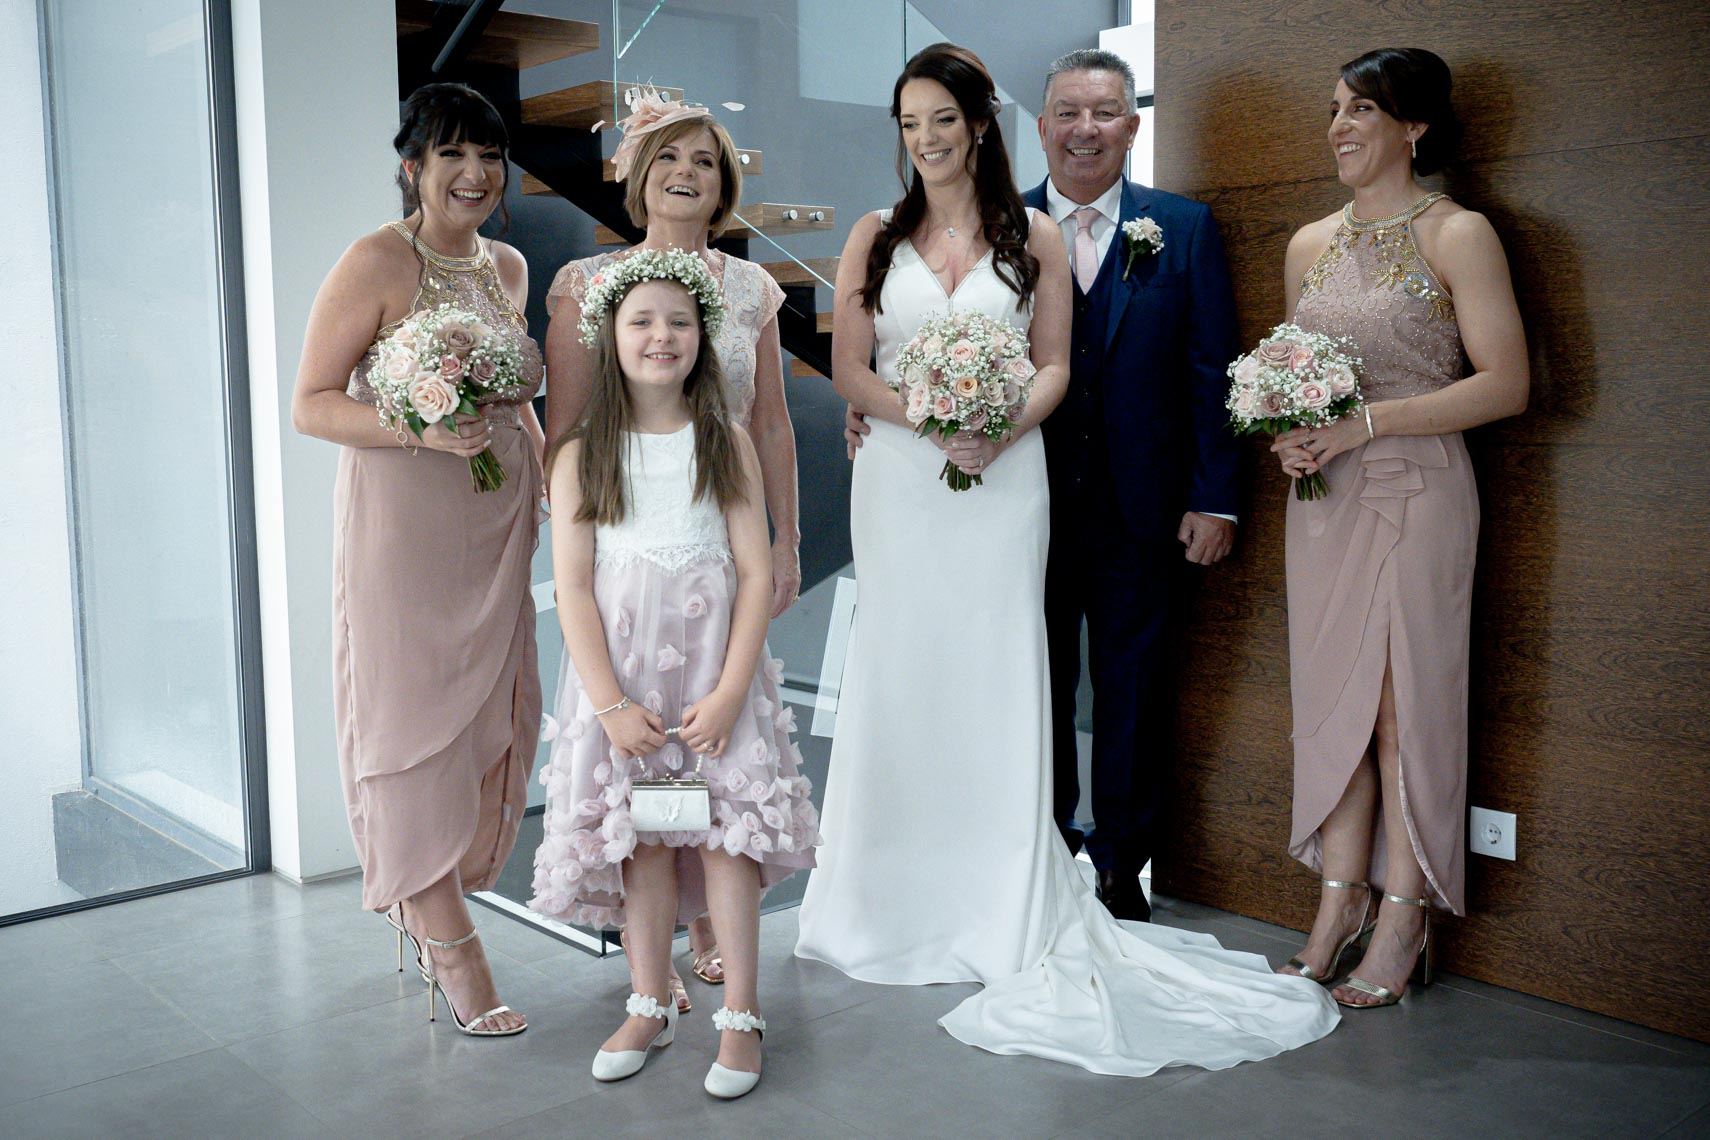 LouiseCraig-YesidoweddingPhotographer-126